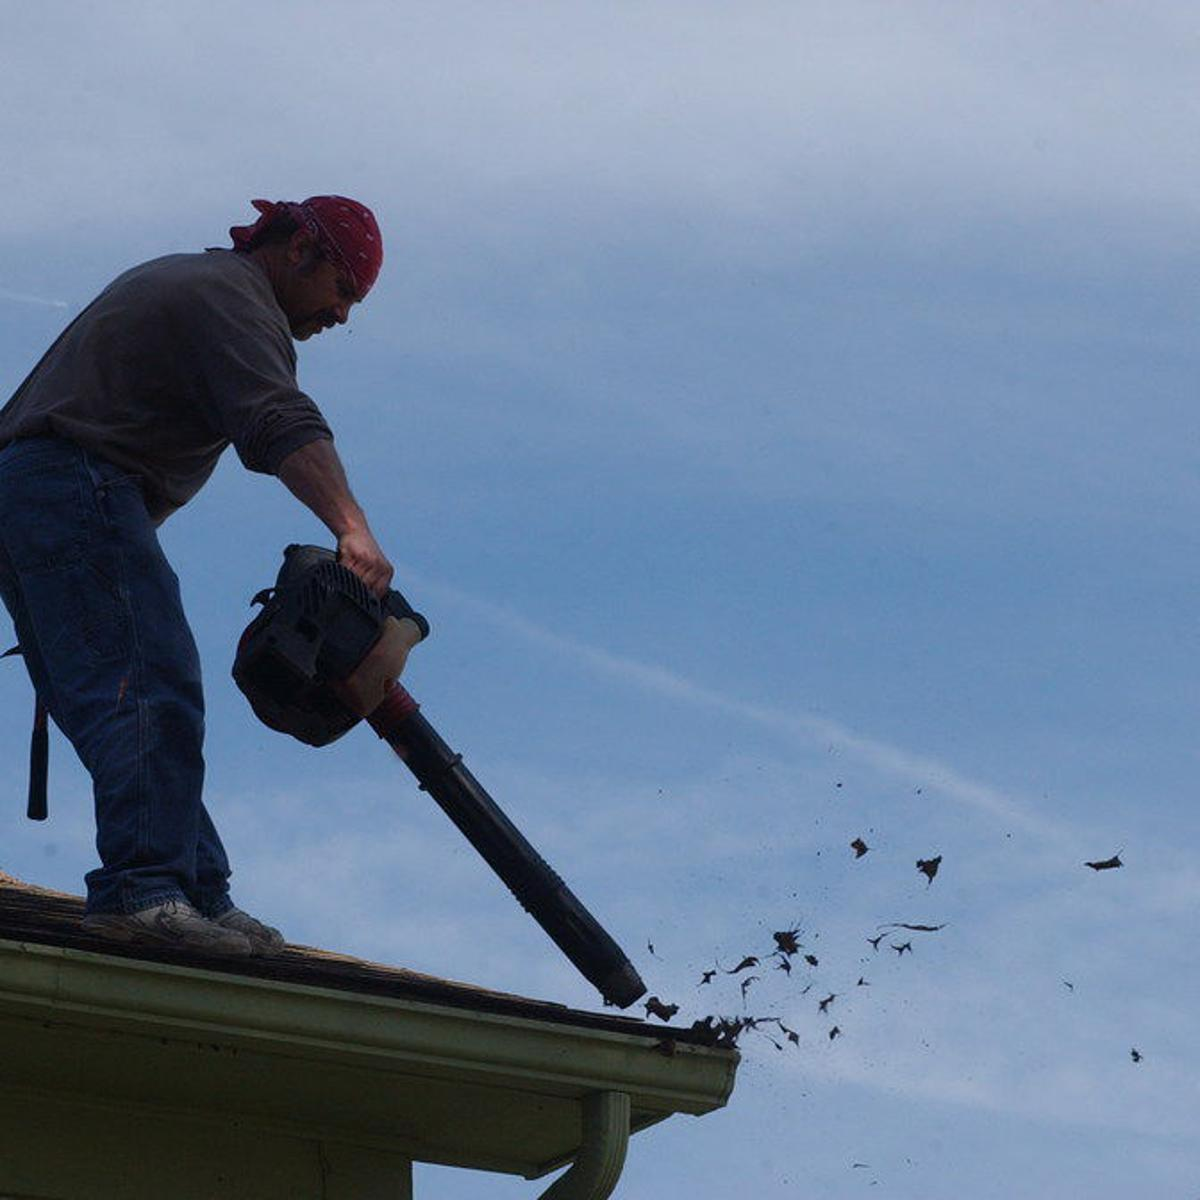 getting your home ready for winter: check furnace, gutters